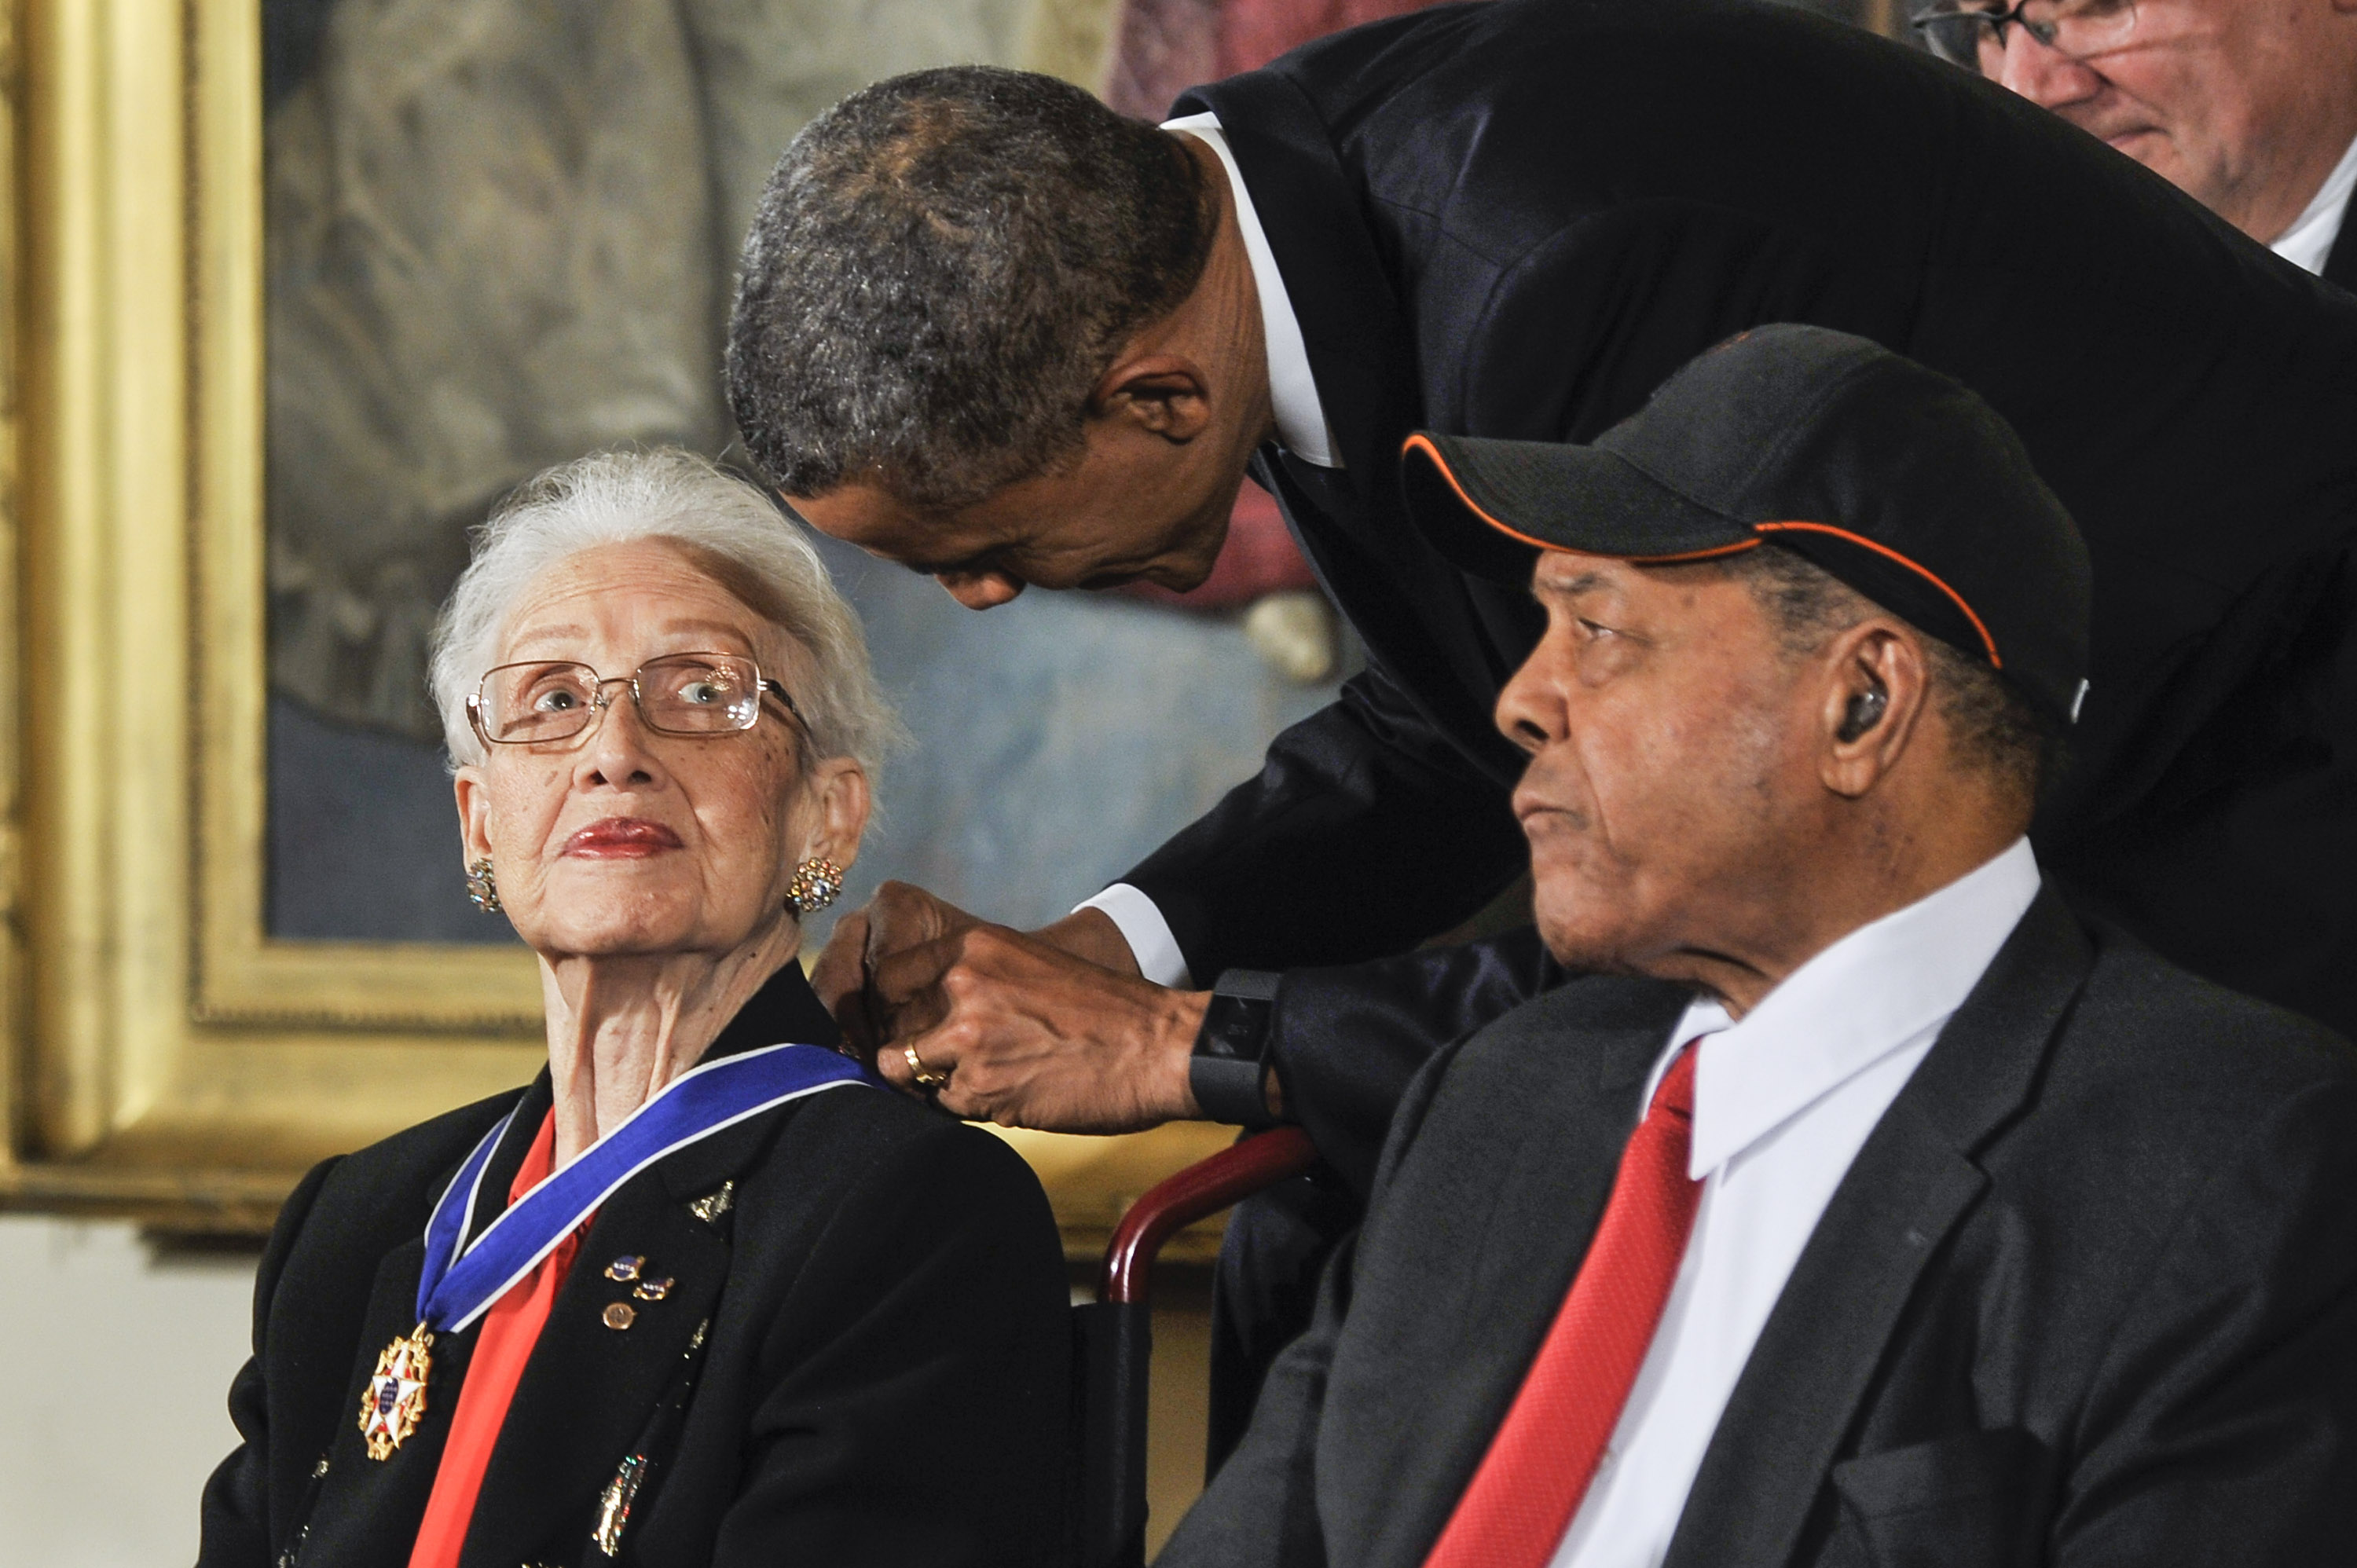 President Barack Obama presents Katherine G. Johnson with the Presidential Medal of Freedom during the 2015 Presidential Medal Of Freedom Ceremony at the White House on November 24, 2015 in Washington, DC.